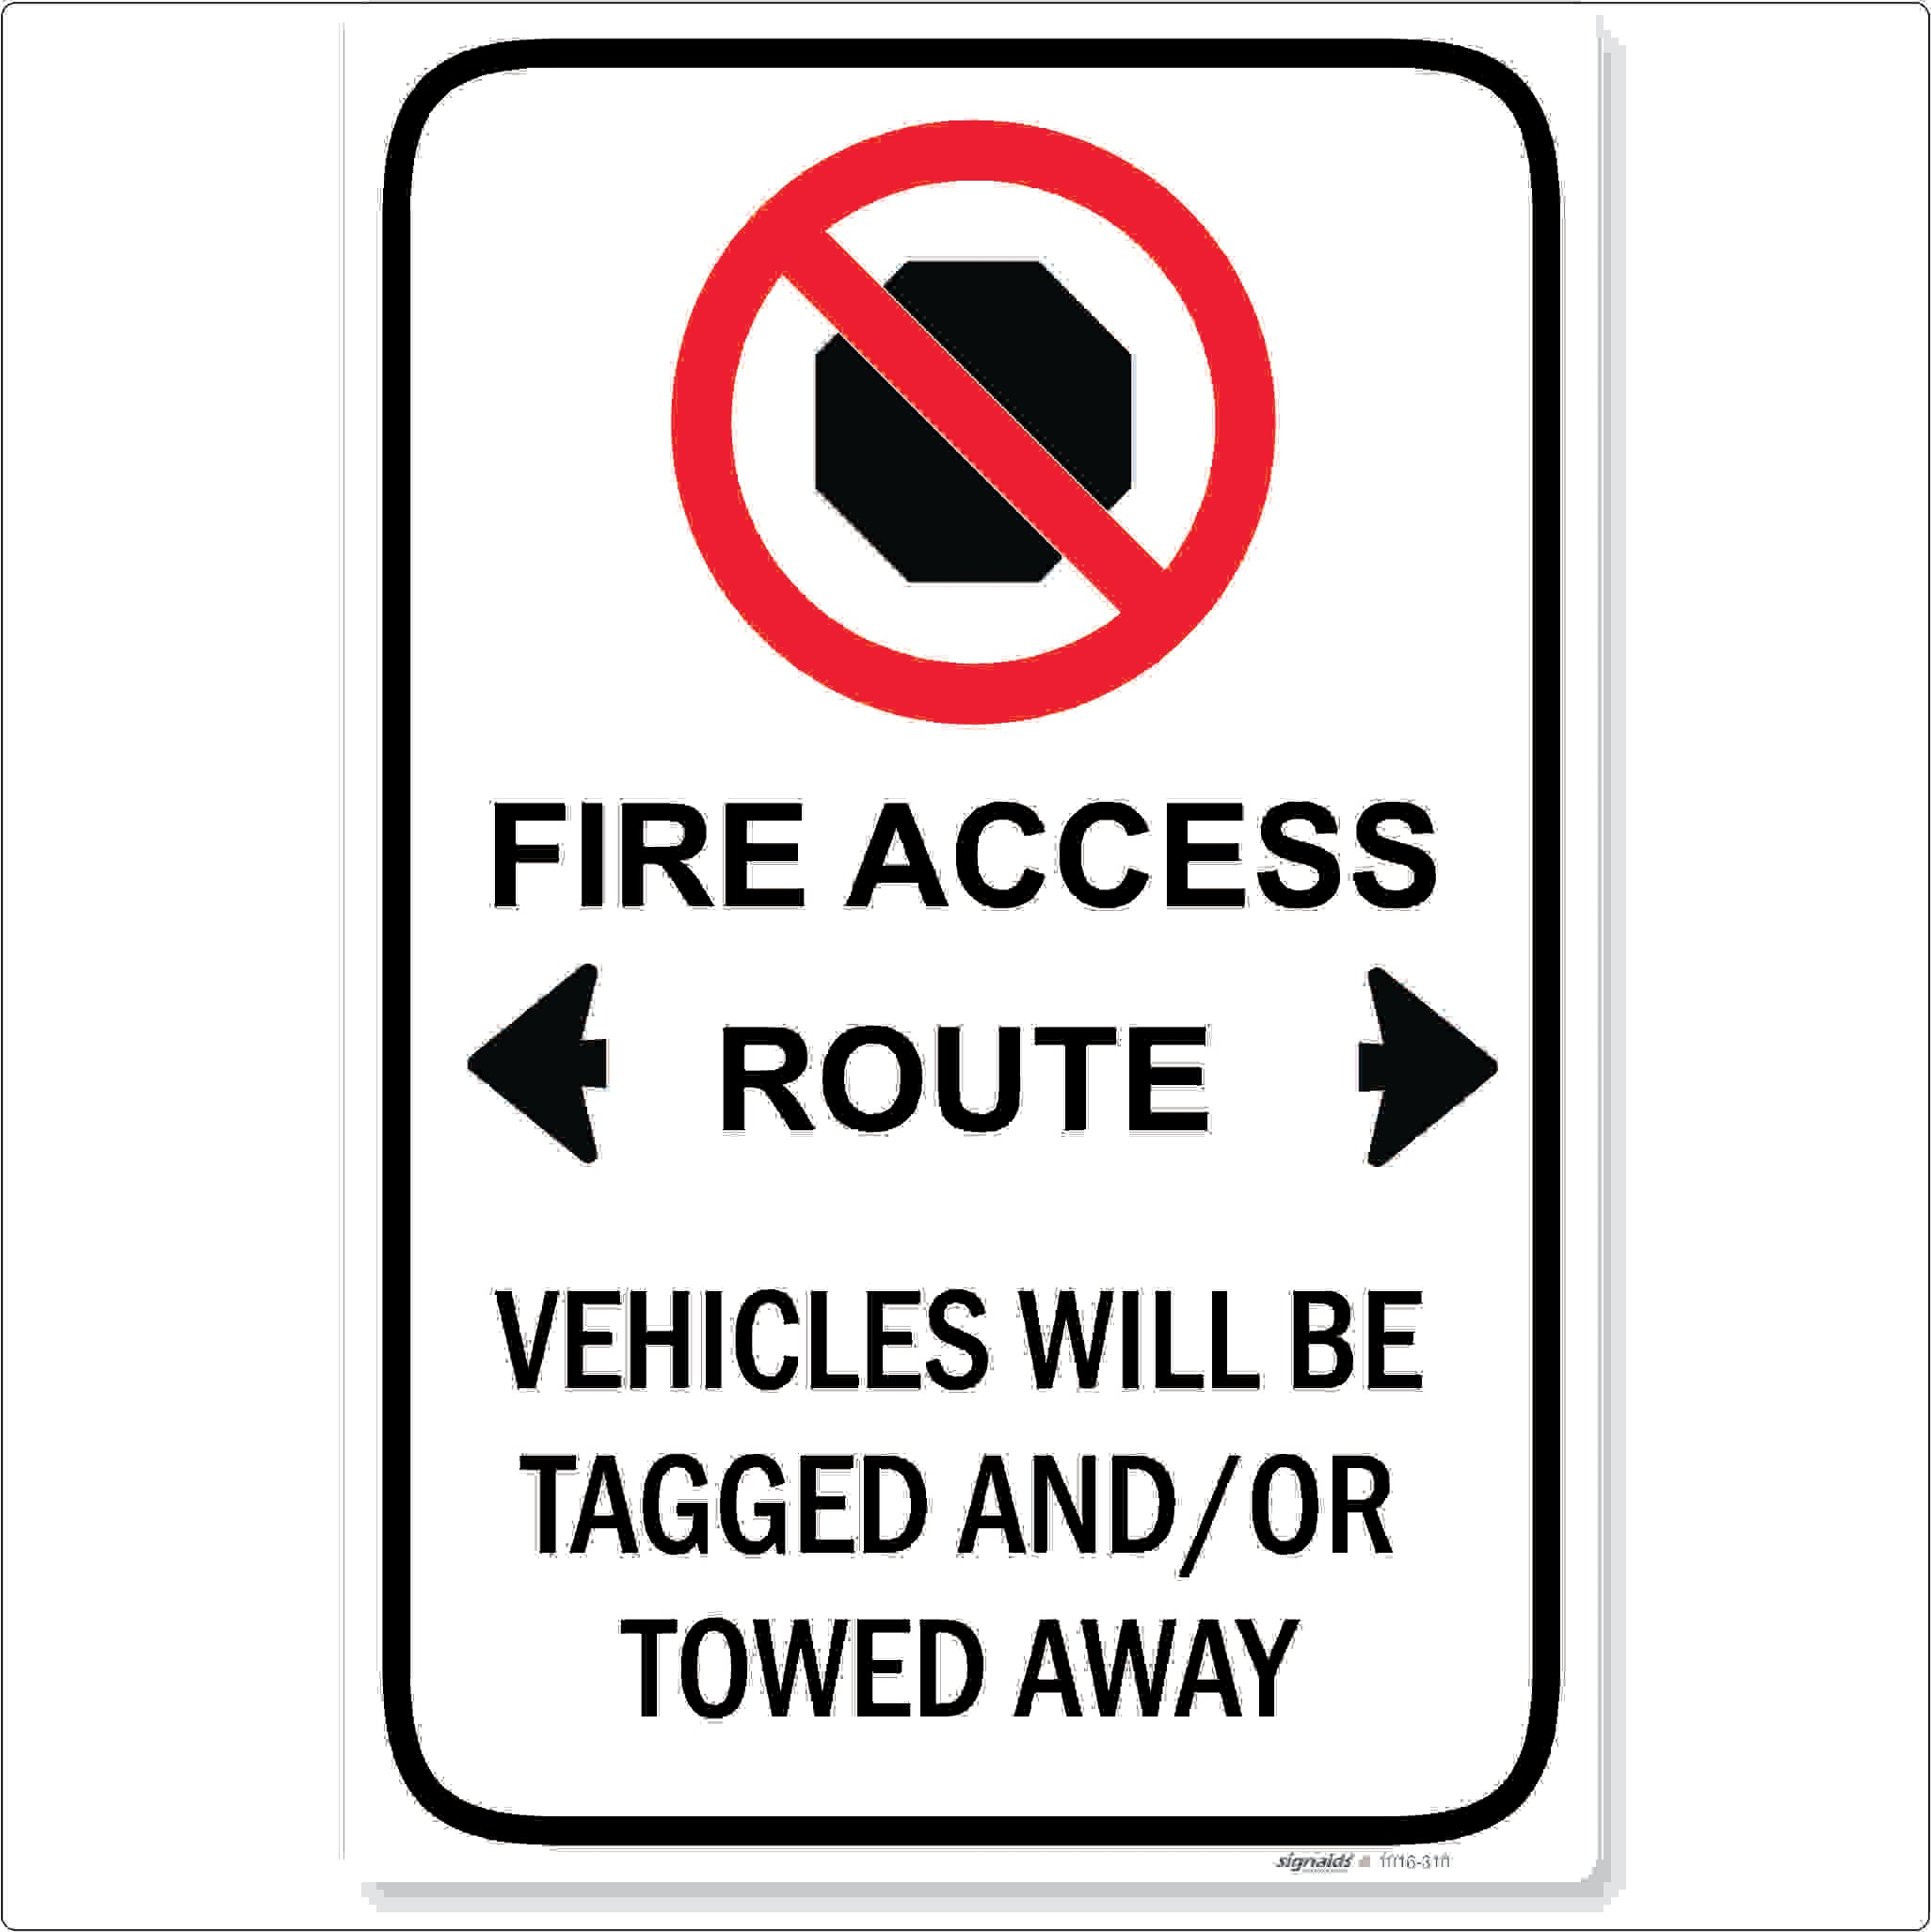 No Stopping Fire Access Route